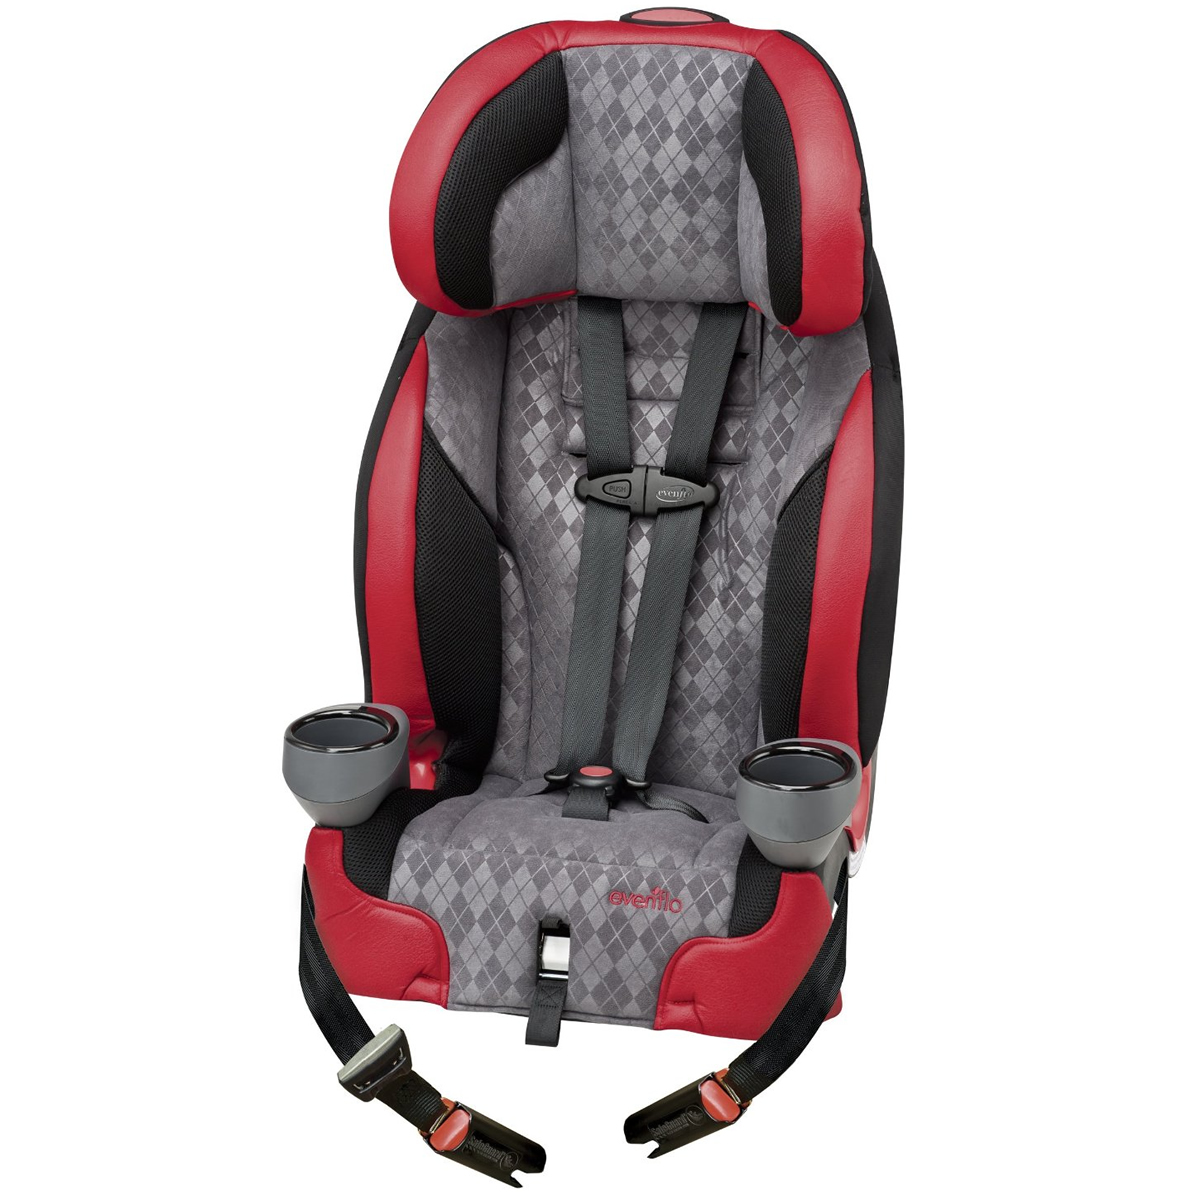 evenflo sureride dlx convertible car seat babycenter. Black Bedroom Furniture Sets. Home Design Ideas